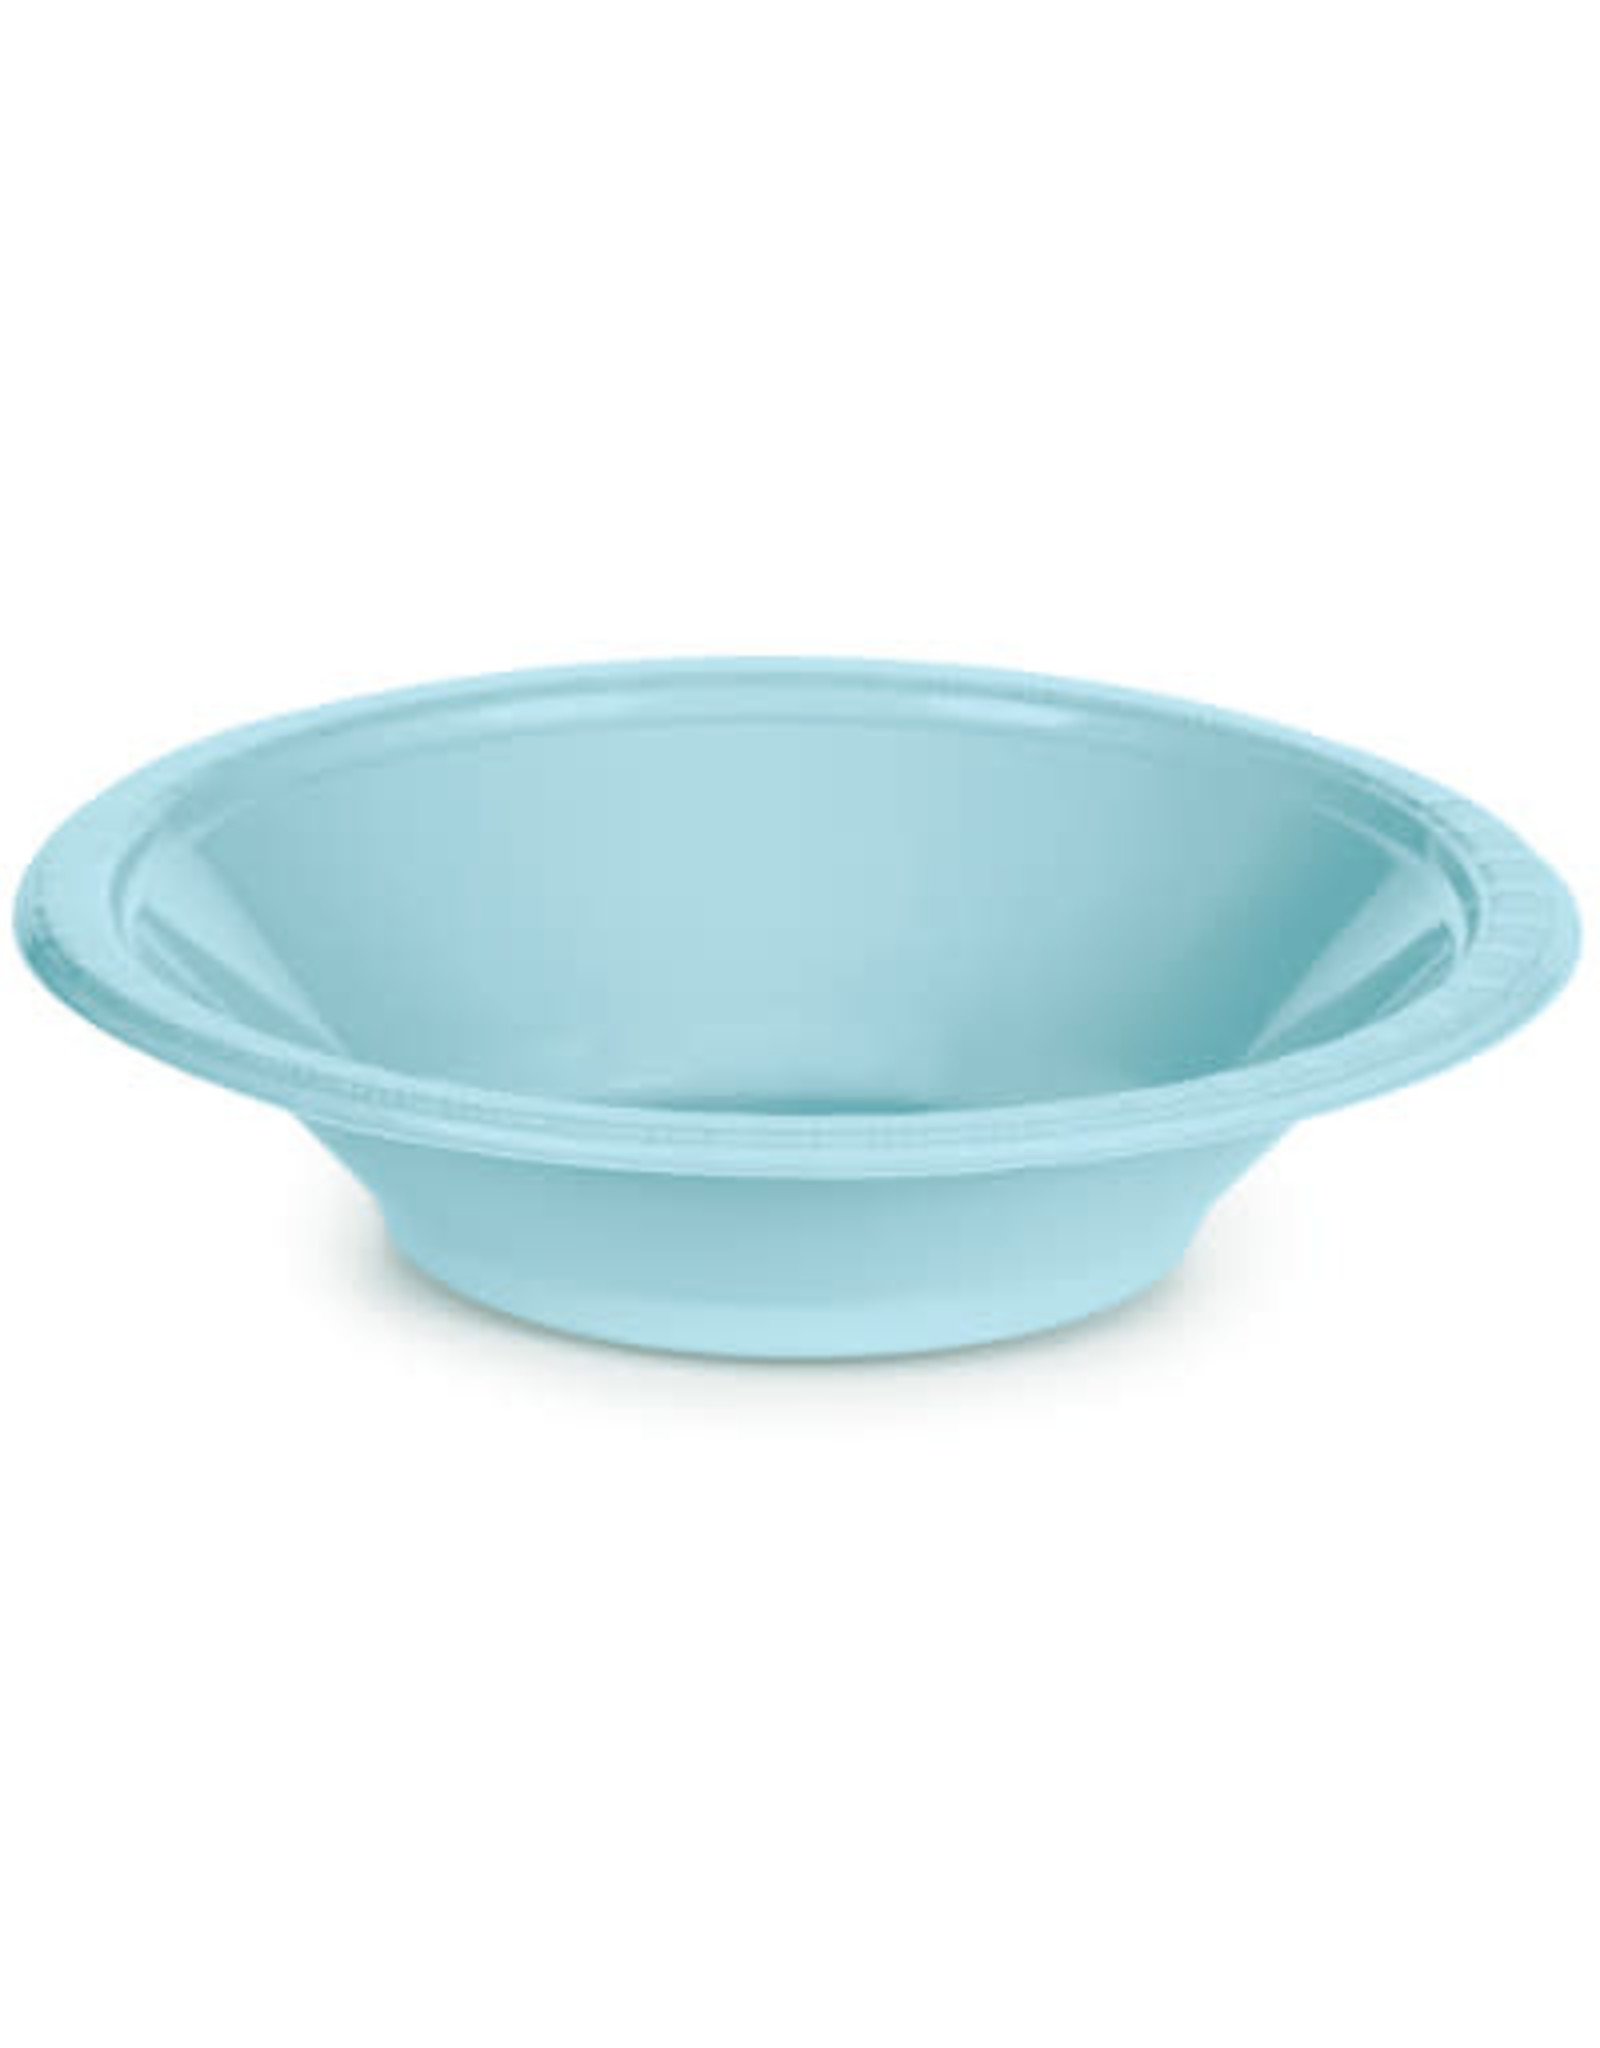 Touch of Color PASTEL BLUE 12 OZ PLASTIC BOWLS